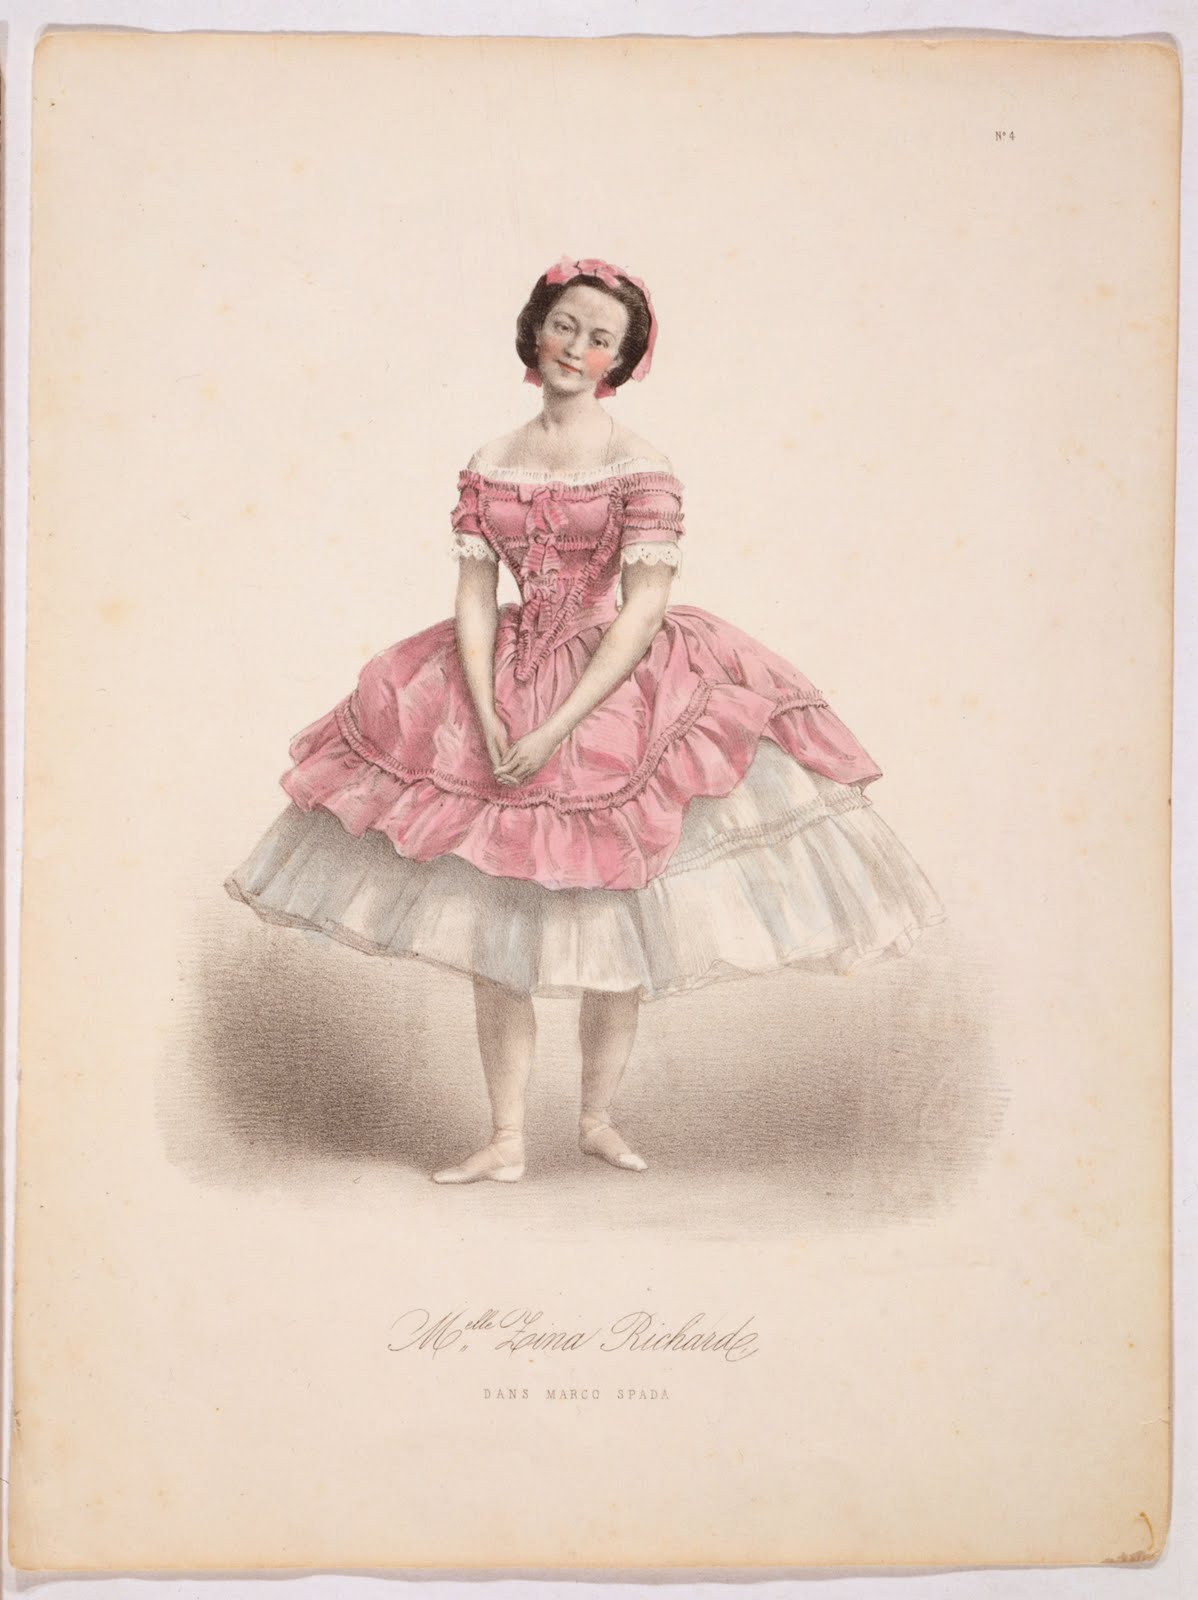 Antique Image - Lovely Pink Ballerina - The Graphics Fairy